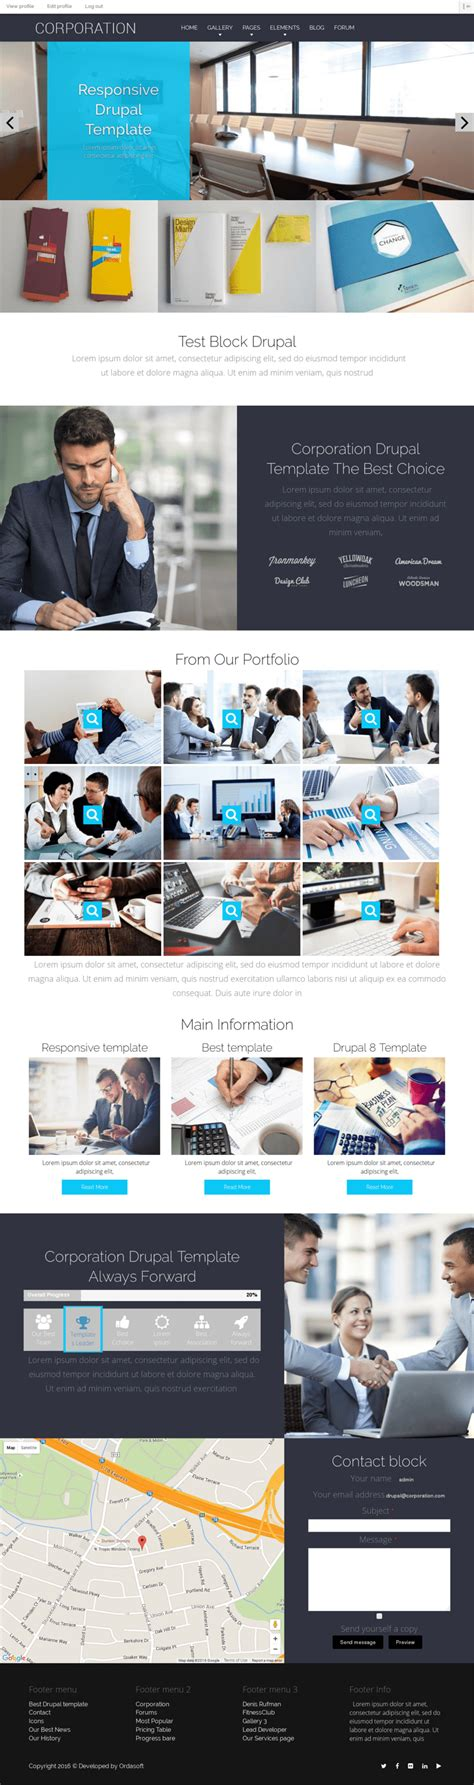 drupal themes responsive business corporation drupal business theme drupal business